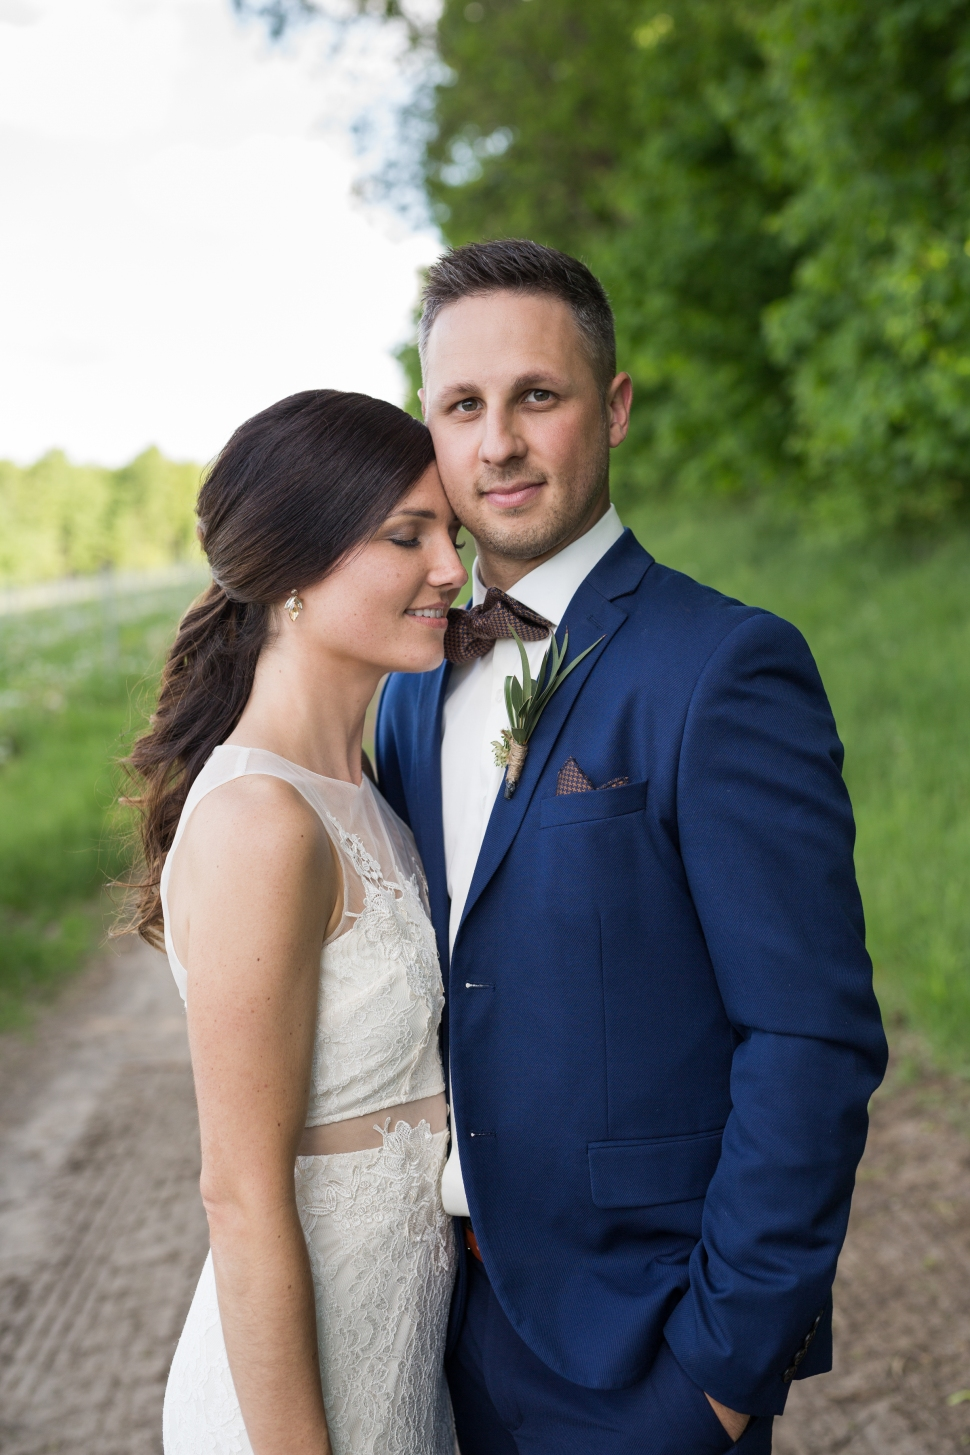 montreal_lifestyle_wedding_photographer_photography_orchard_winery_photographe_mariage_vignoble_rougemont-41